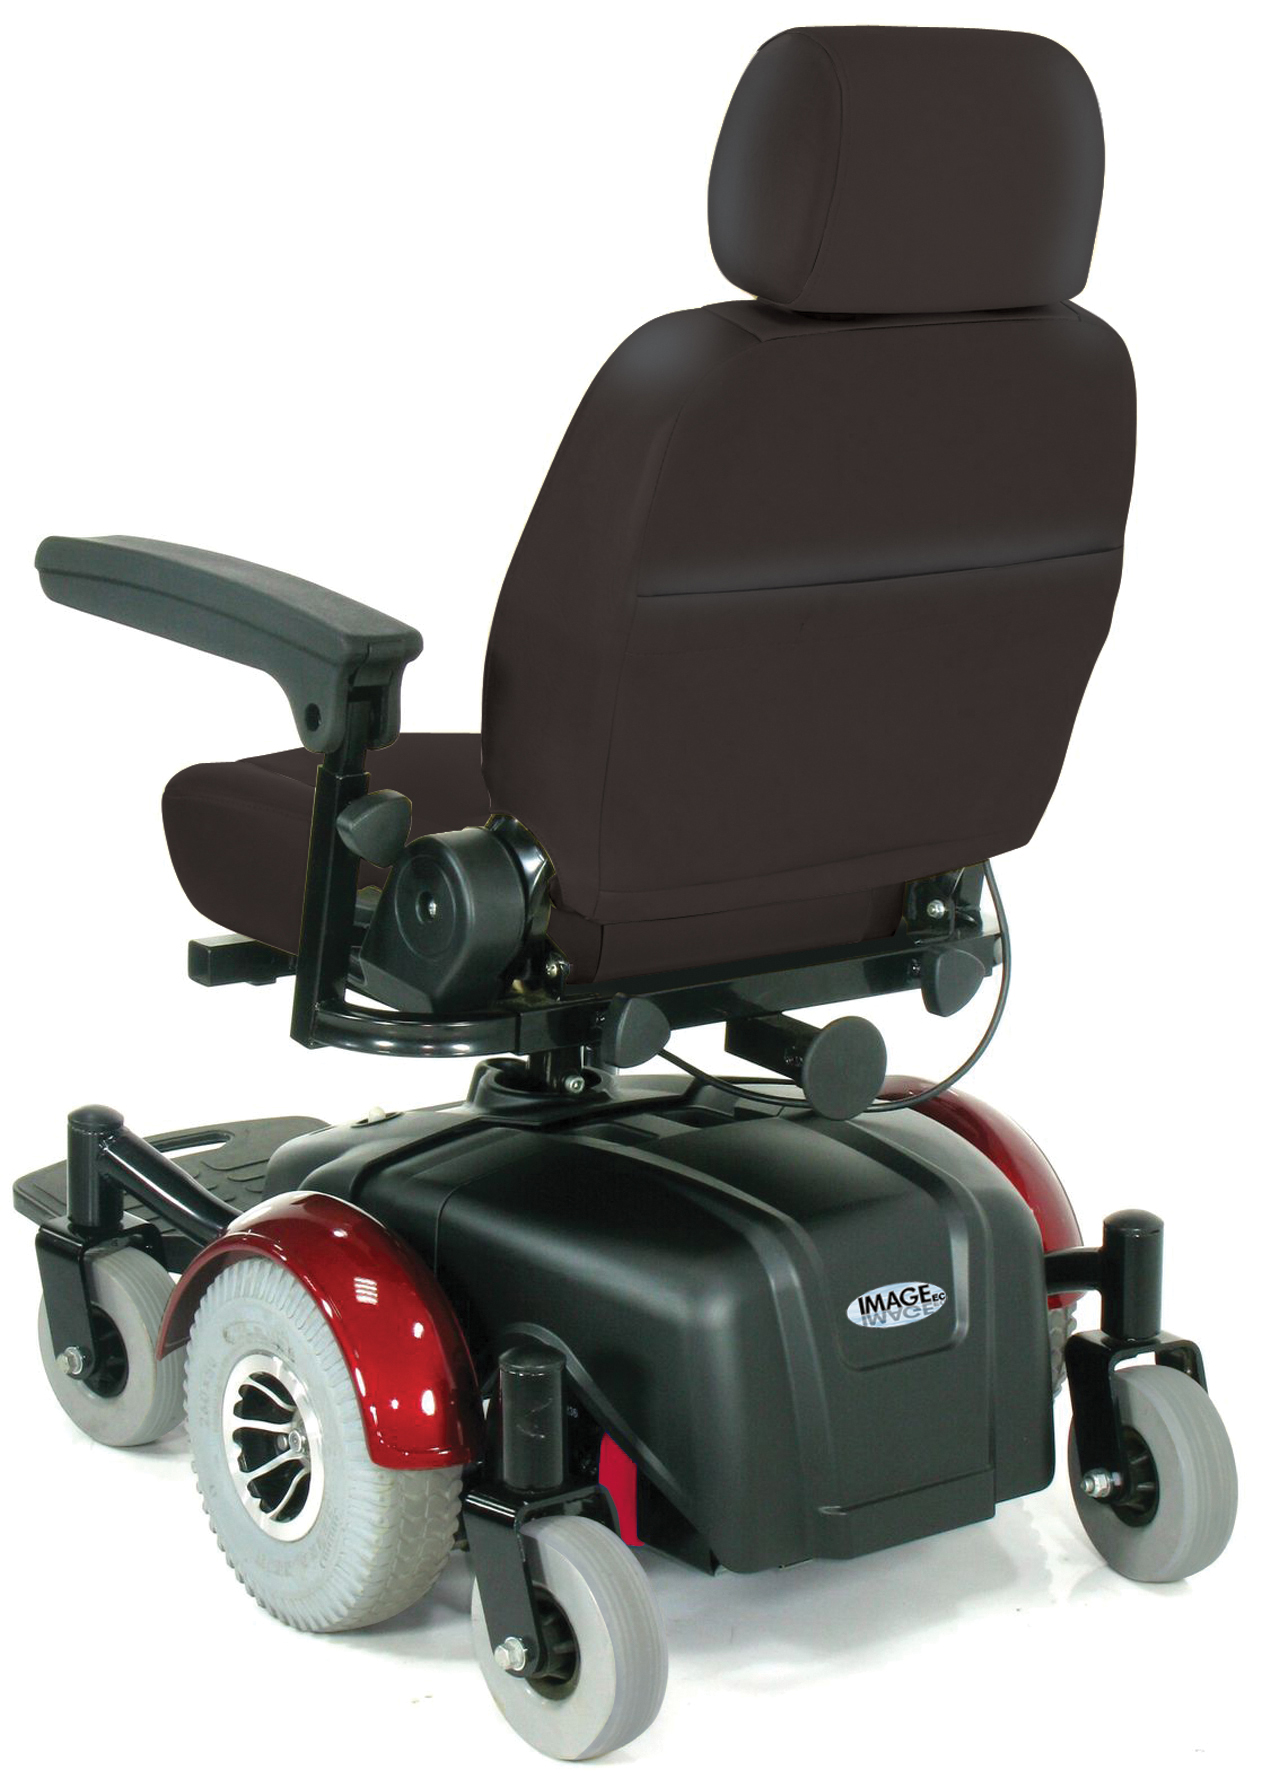 "Image EC Mid Wheel Drive Power Wheelchair 20"" - 2800ecbu-rcl-20-powerchair2800ecbu-rcld.jpg"